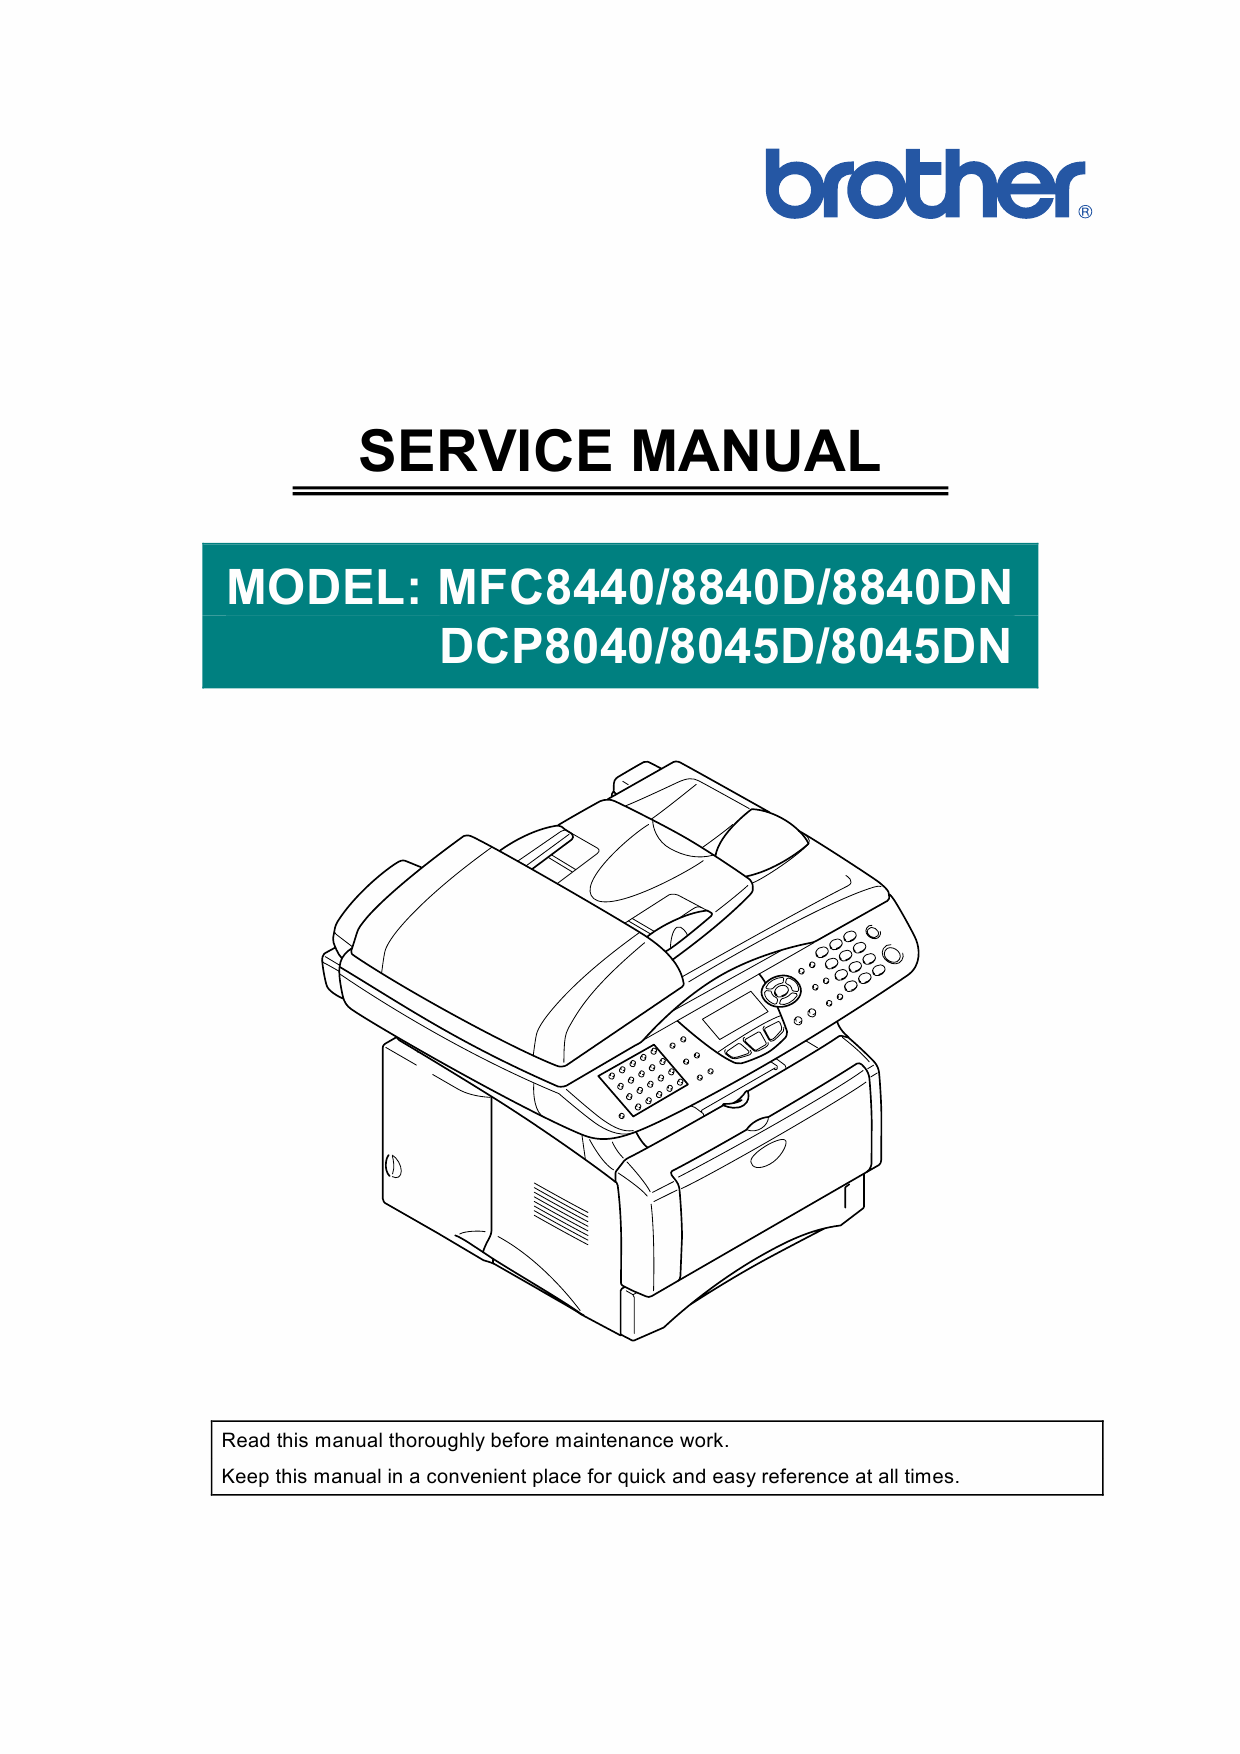 Brother MFC 8840 8840D 8840DN DCP8040 8045D 8045DN Service Manual-1